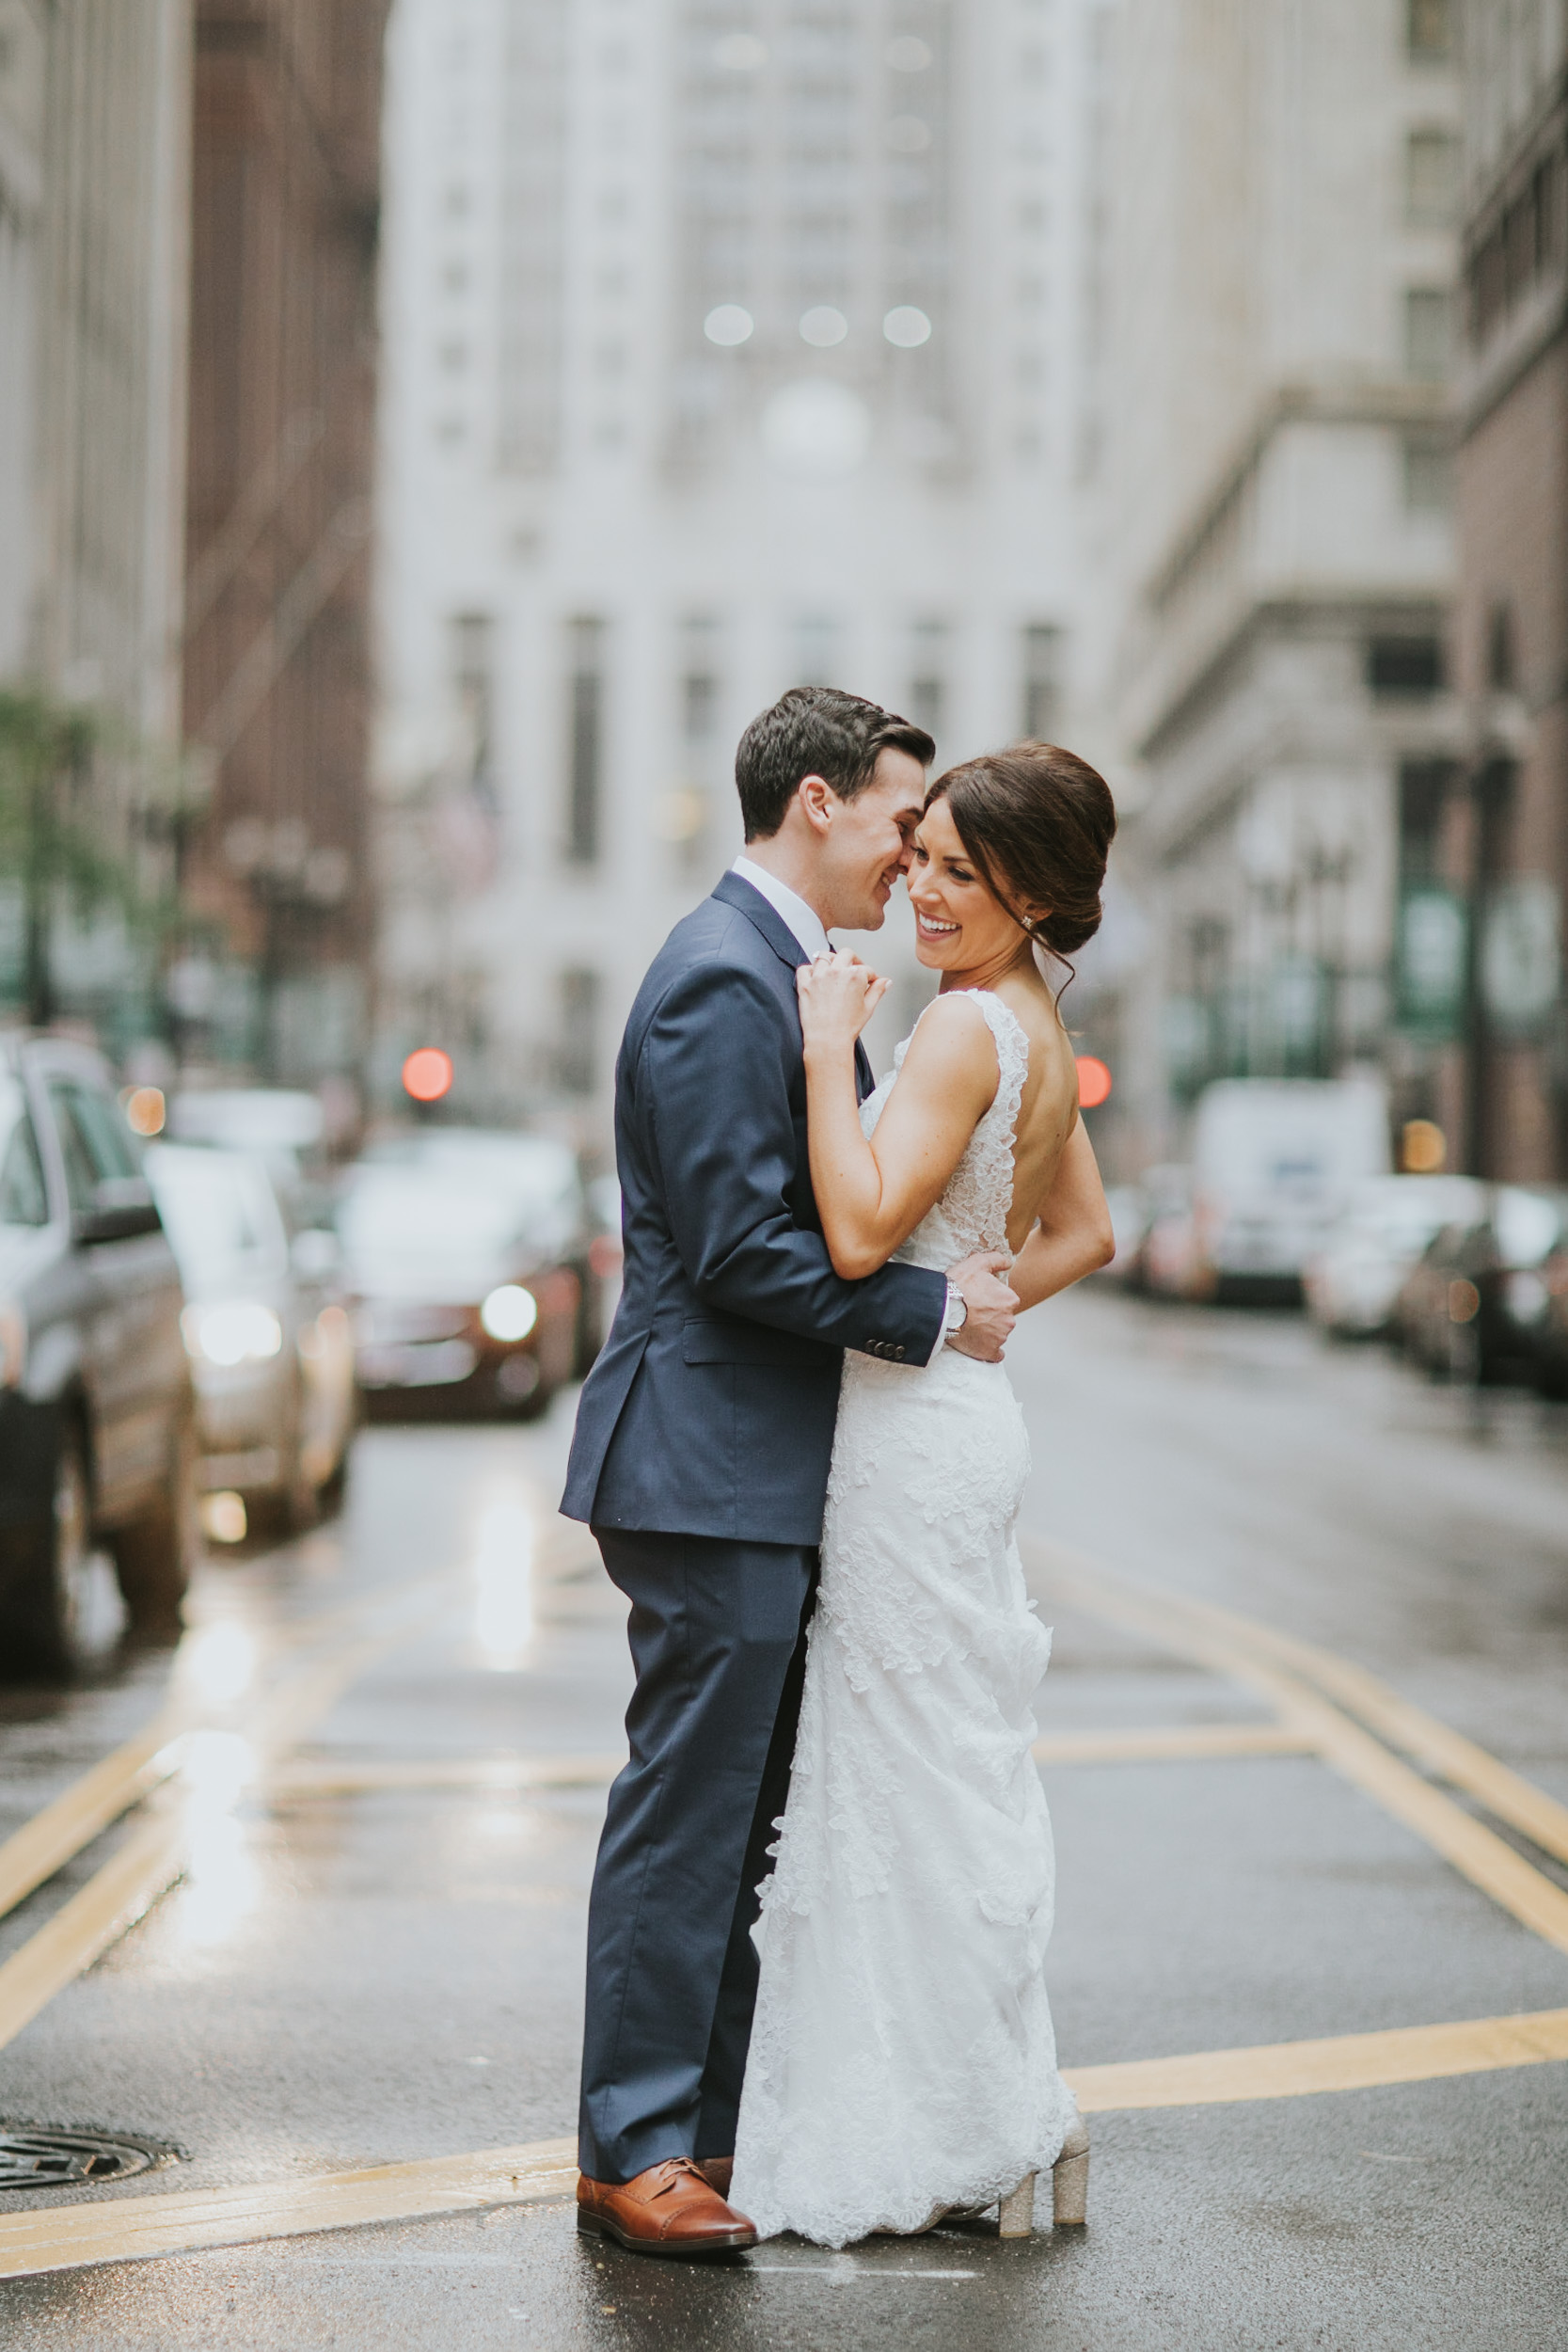 HaroldWashingtonLibraryWedding_Polly C Photography 1704142159.jpg